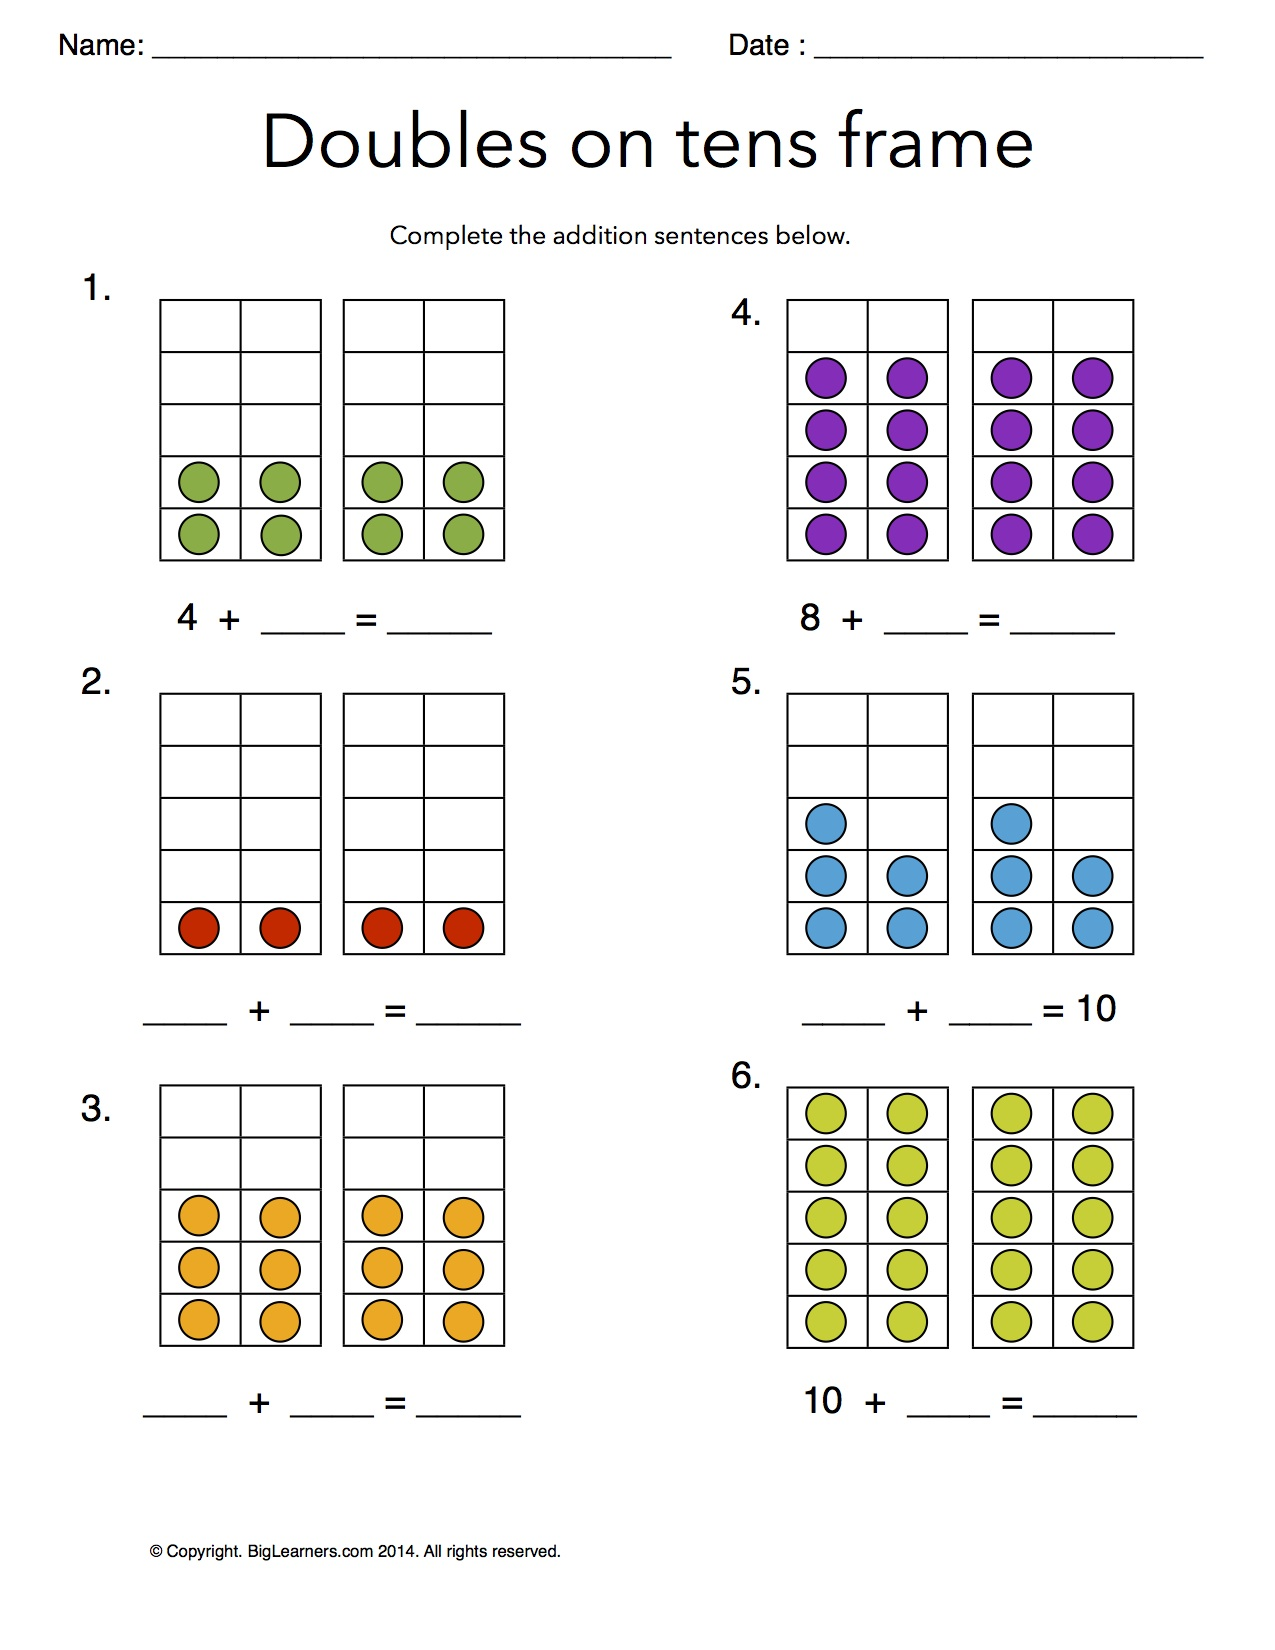 Worksheets 1st Grade Common Core Math Worksheets grade 1 free common core math worksheets biglearners preview image for worksheet with title doubles on tens frames